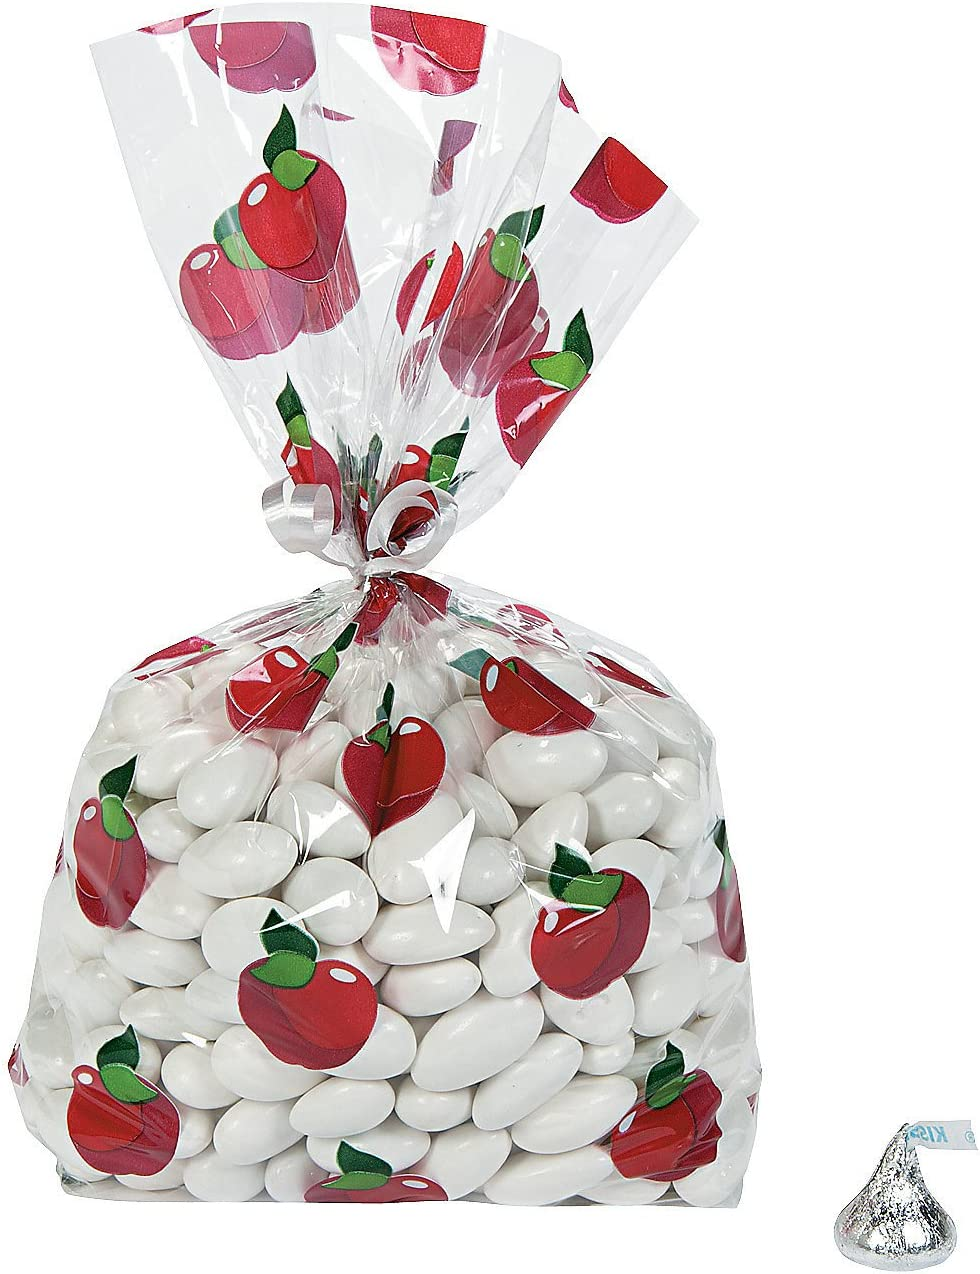 Fun Express - Fall Apple Cello Bags (dz) for Halloween - Party Supplies - Bags - Cellophane Bags - Halloween - 12 Pieces